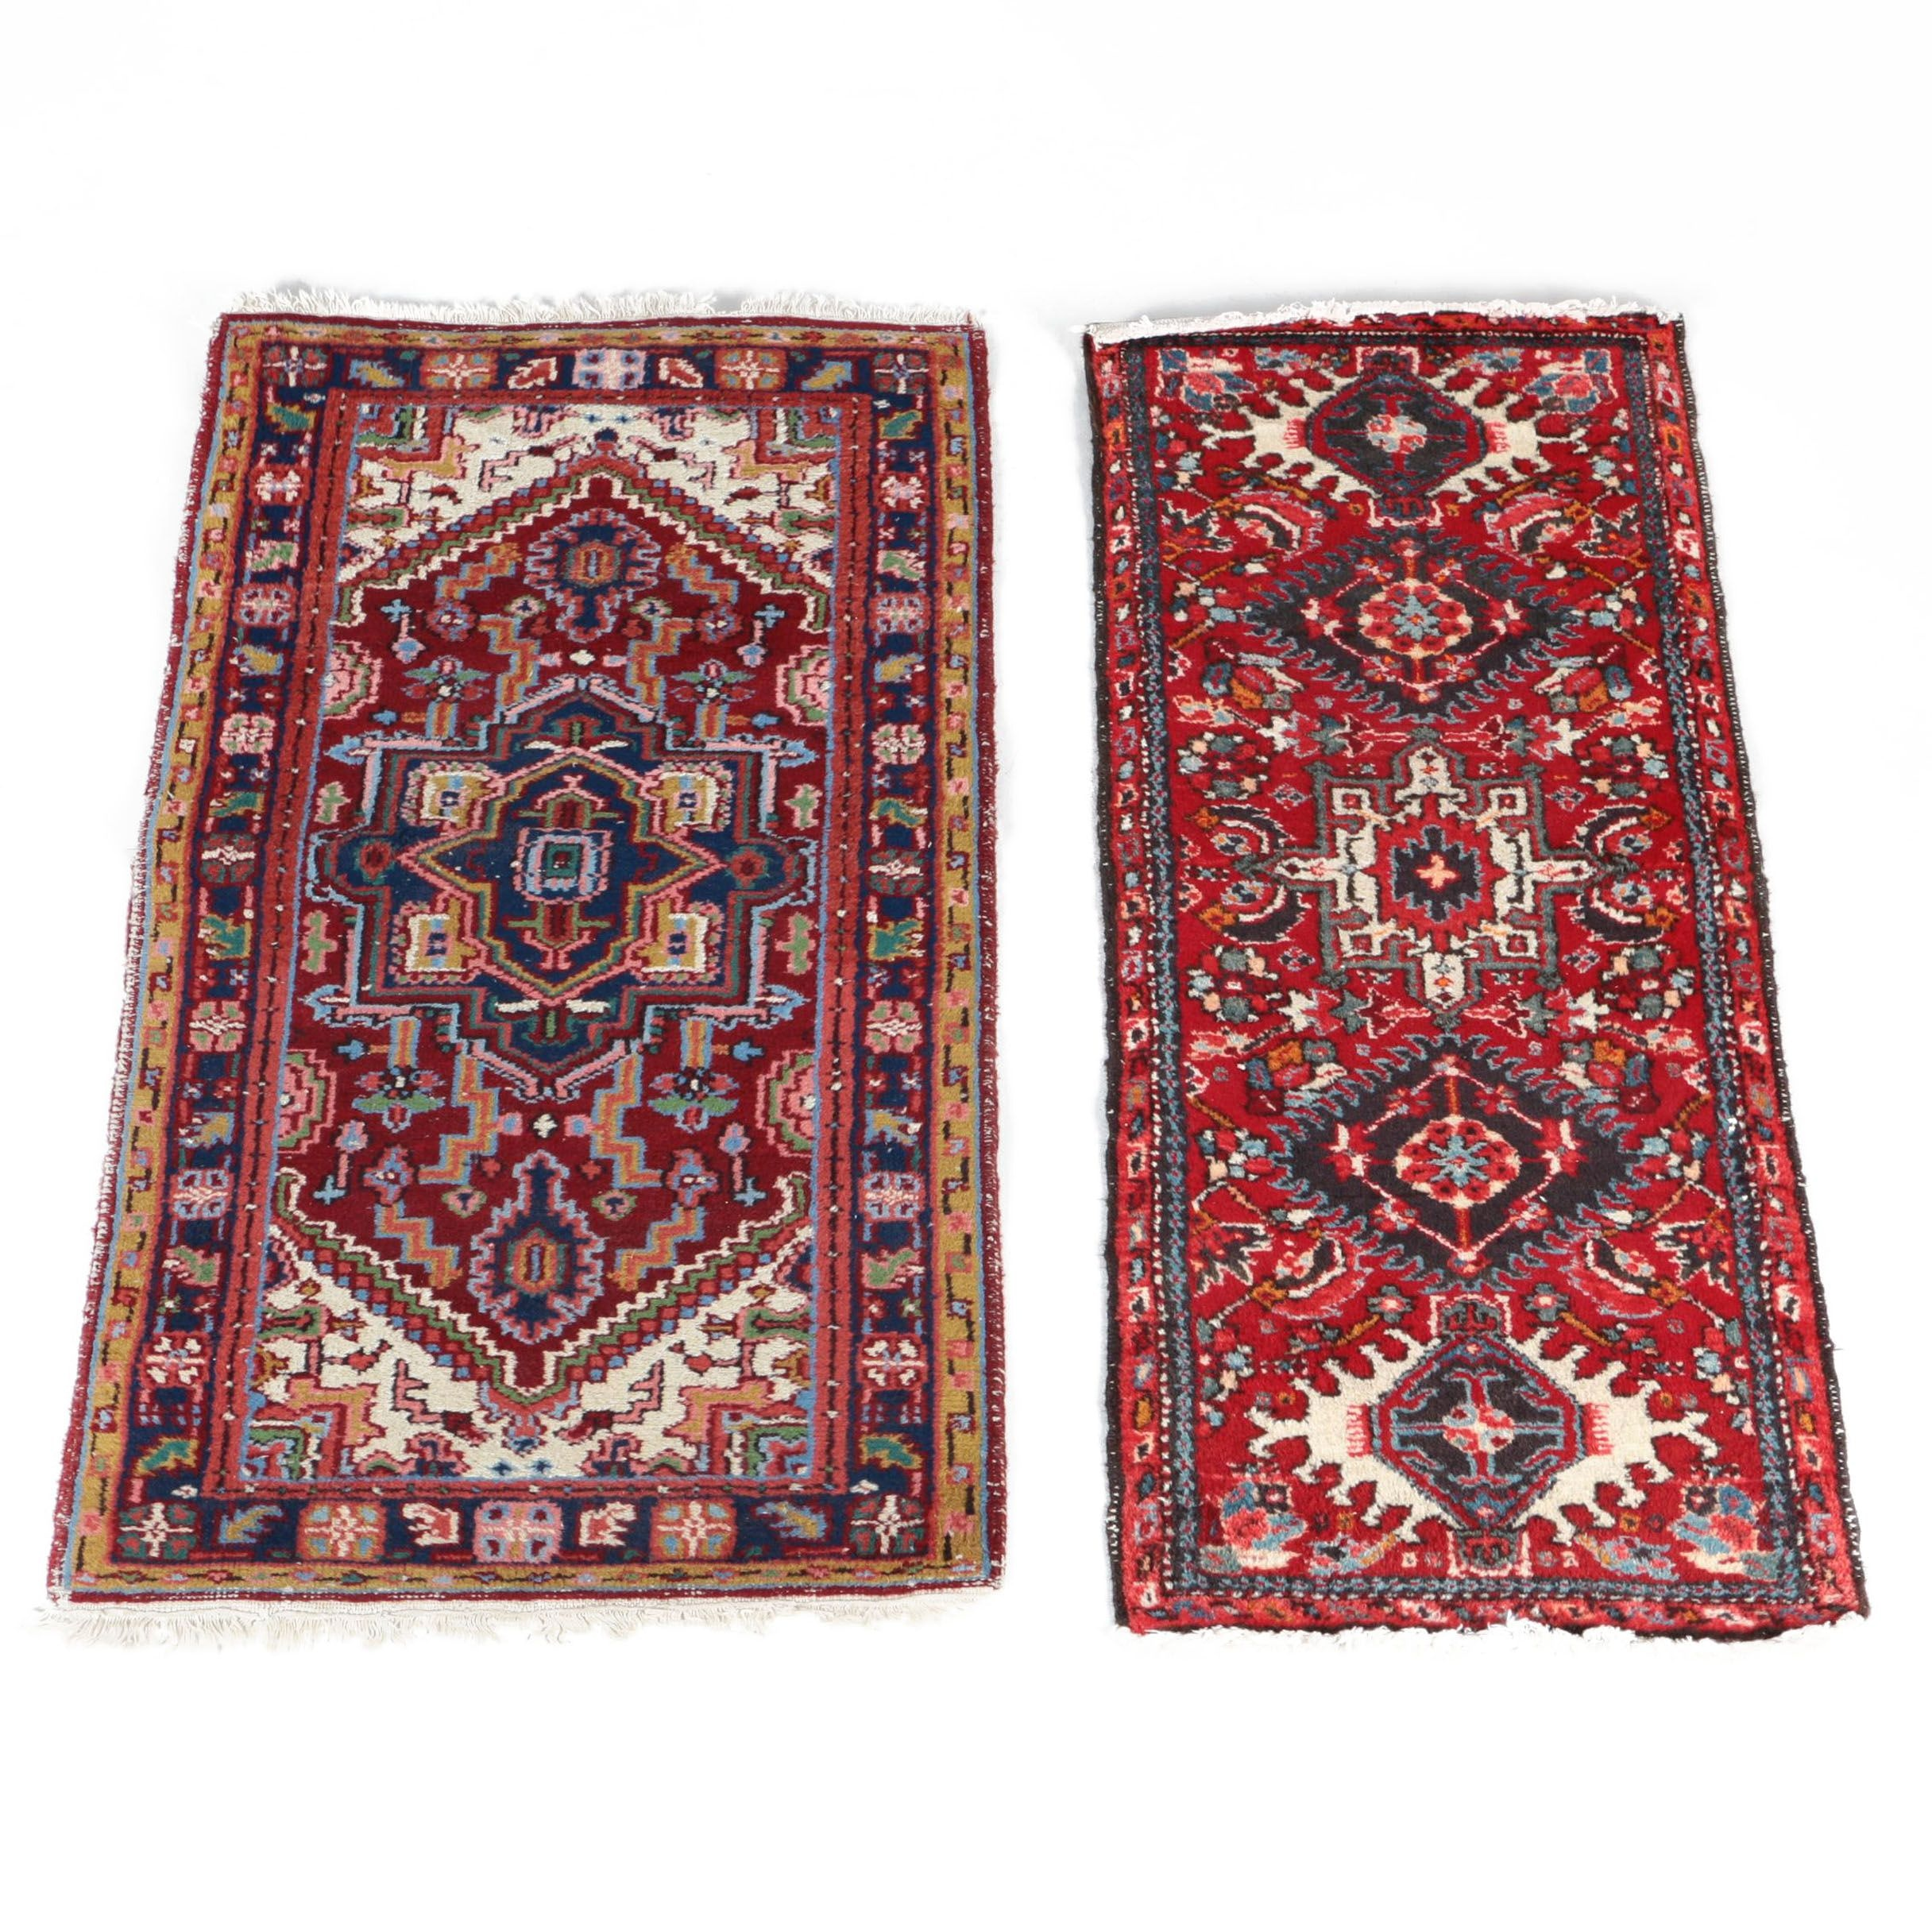 Hand-Knotted Northwest Persian Accent Rugs